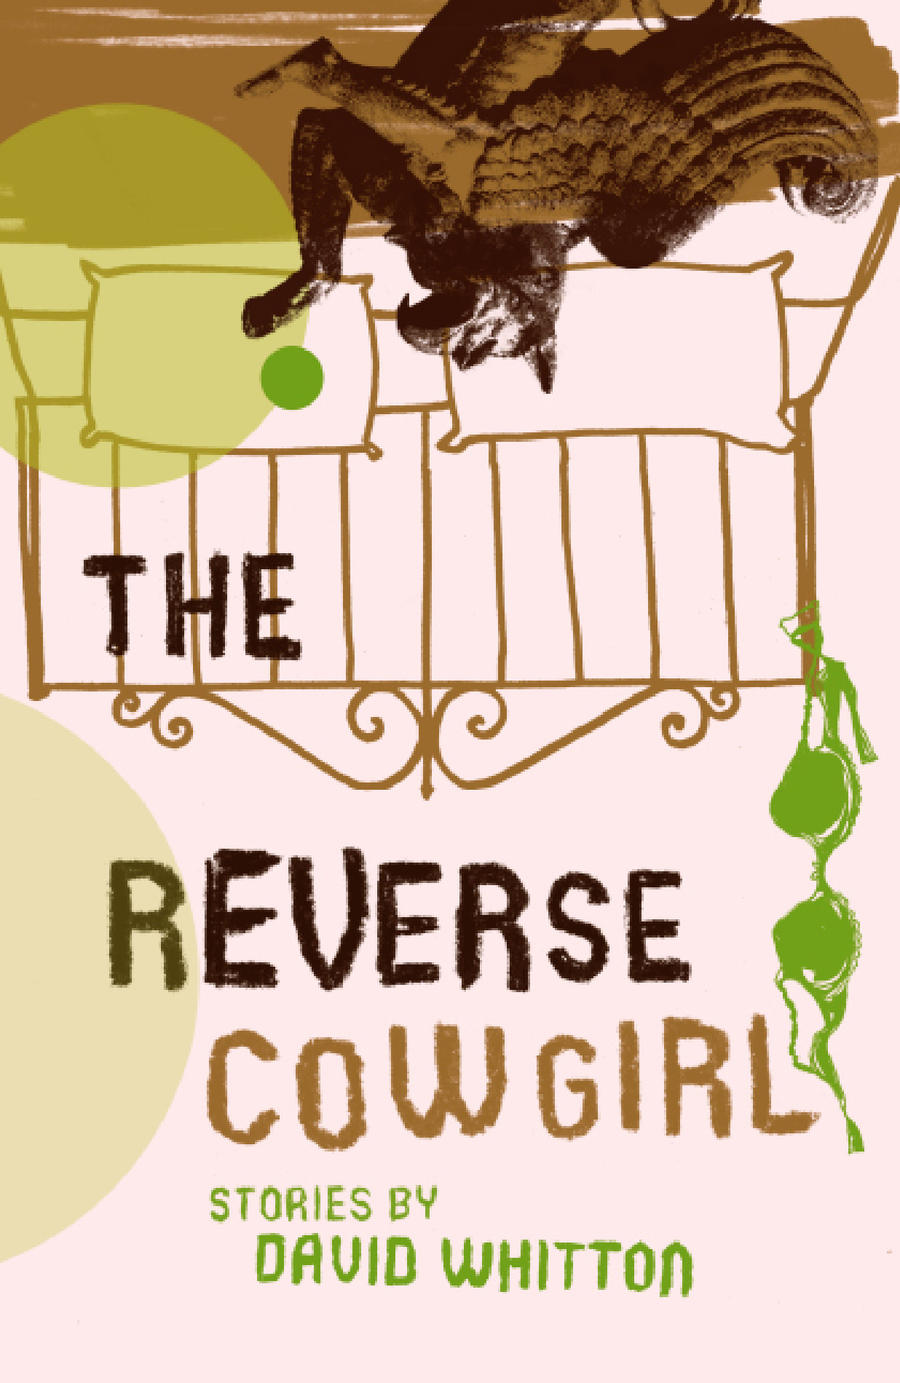 Reserve cowgirl